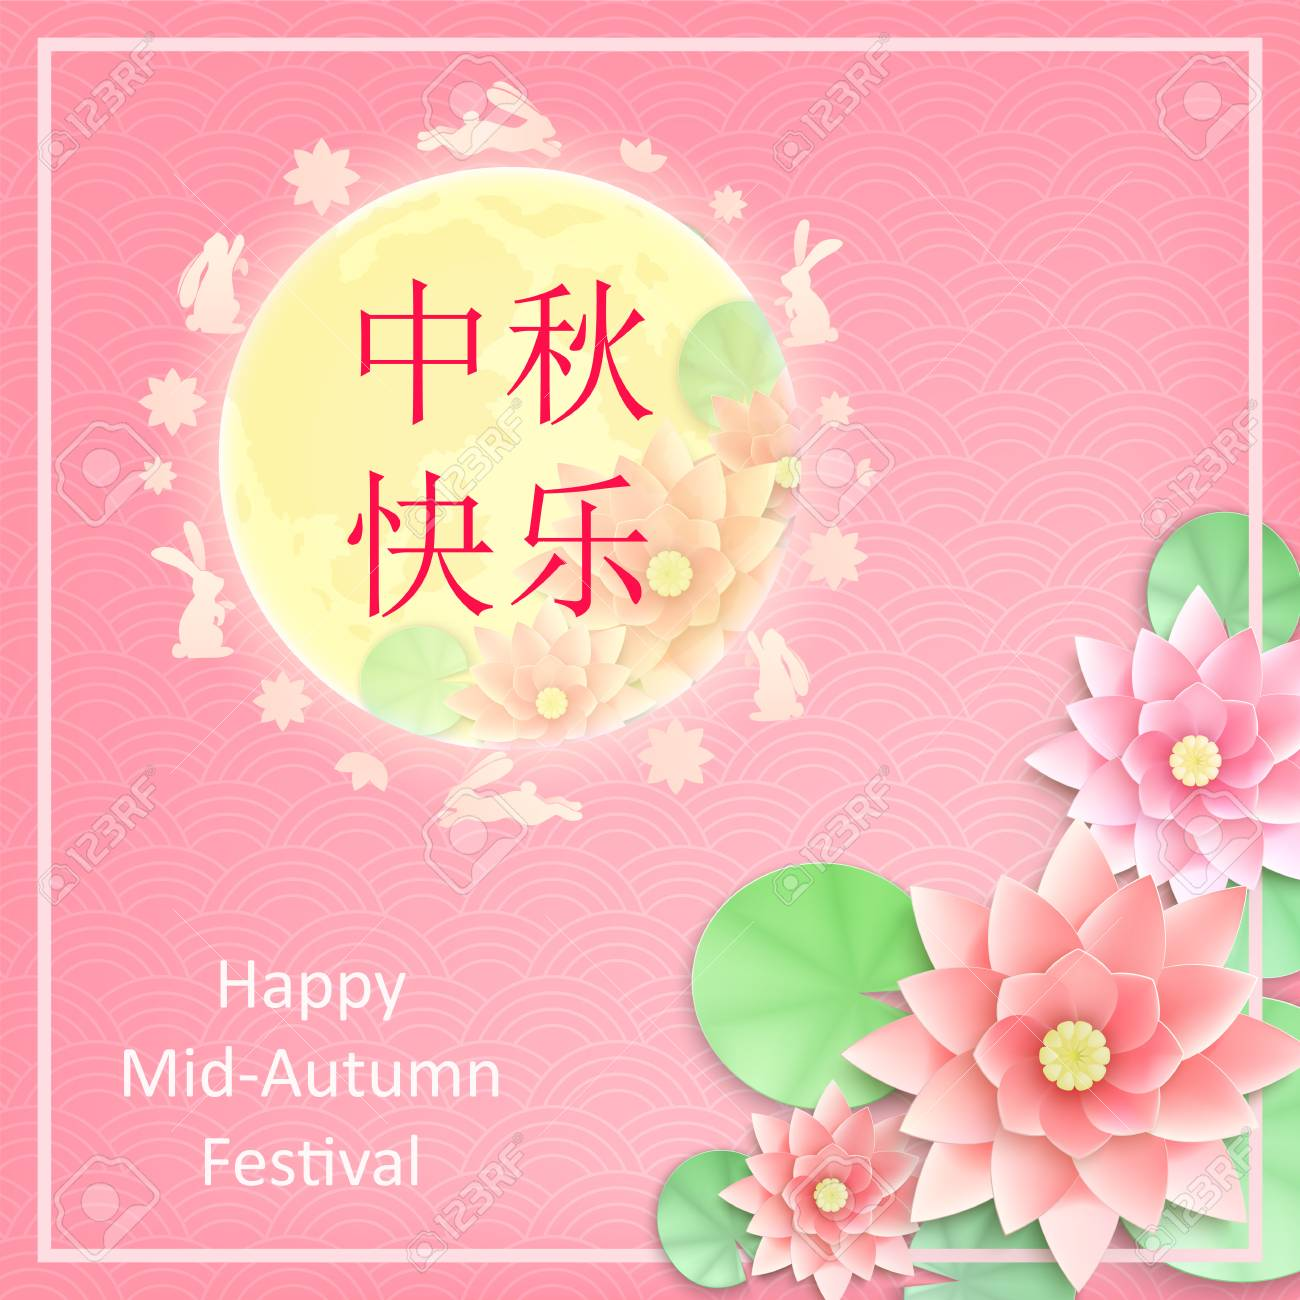 chinese mid autumn festival greeting card with moon rabbit and